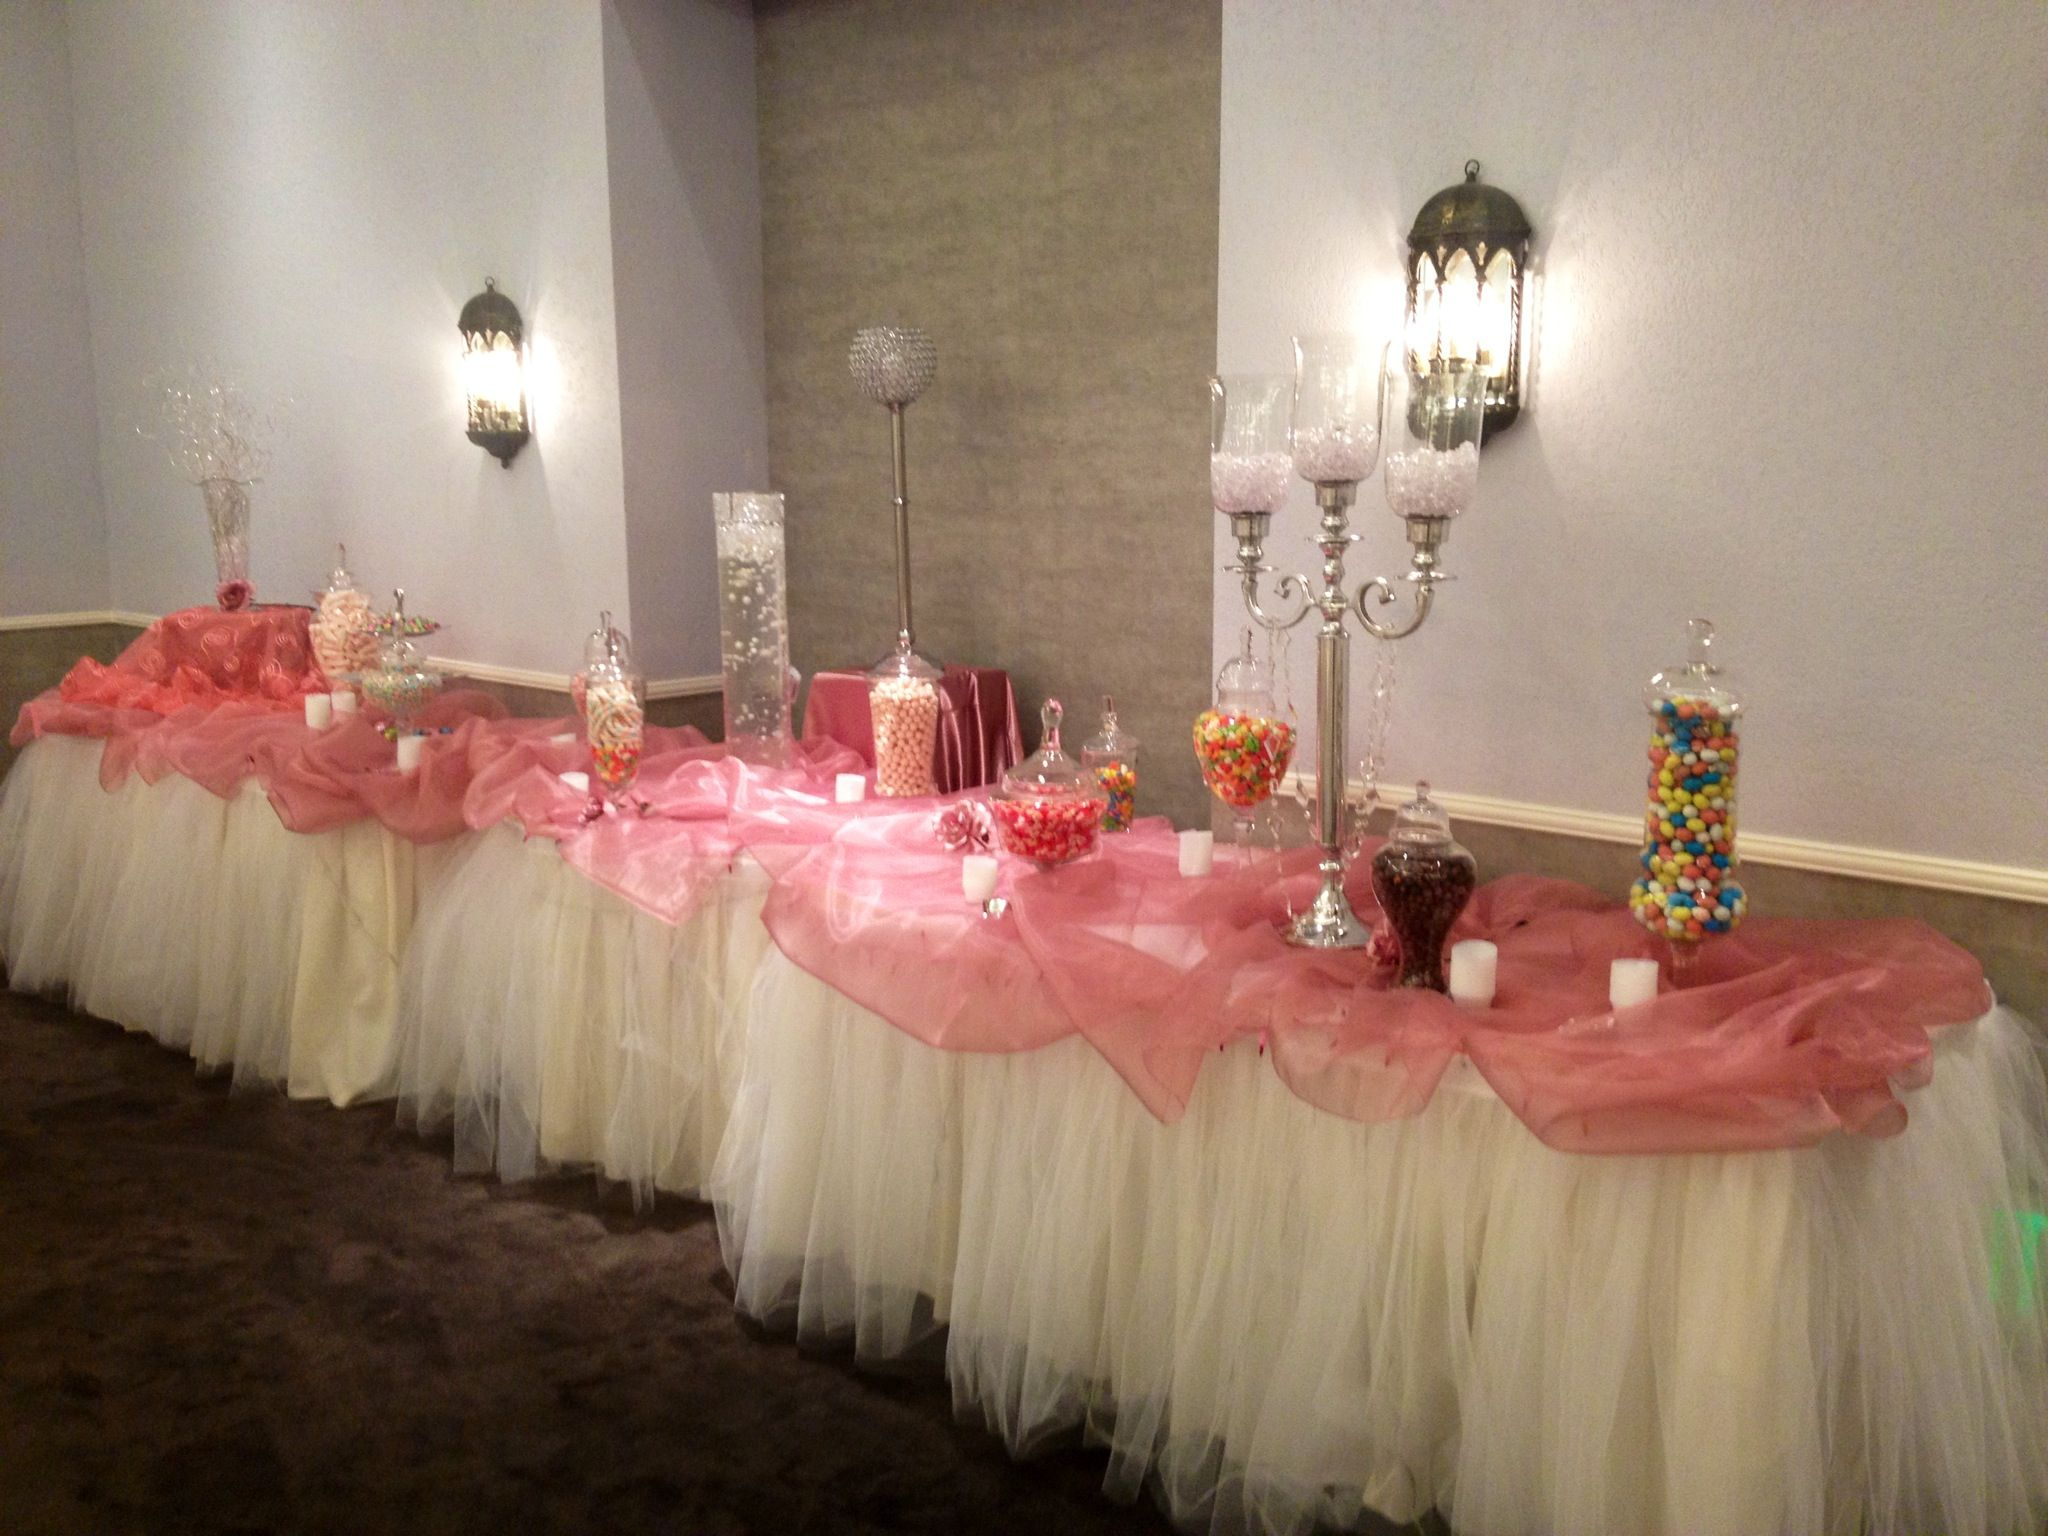 candy table for quinceanera quinceaneras 25 anniversary cake candy table quinceanera. Black Bedroom Furniture Sets. Home Design Ideas